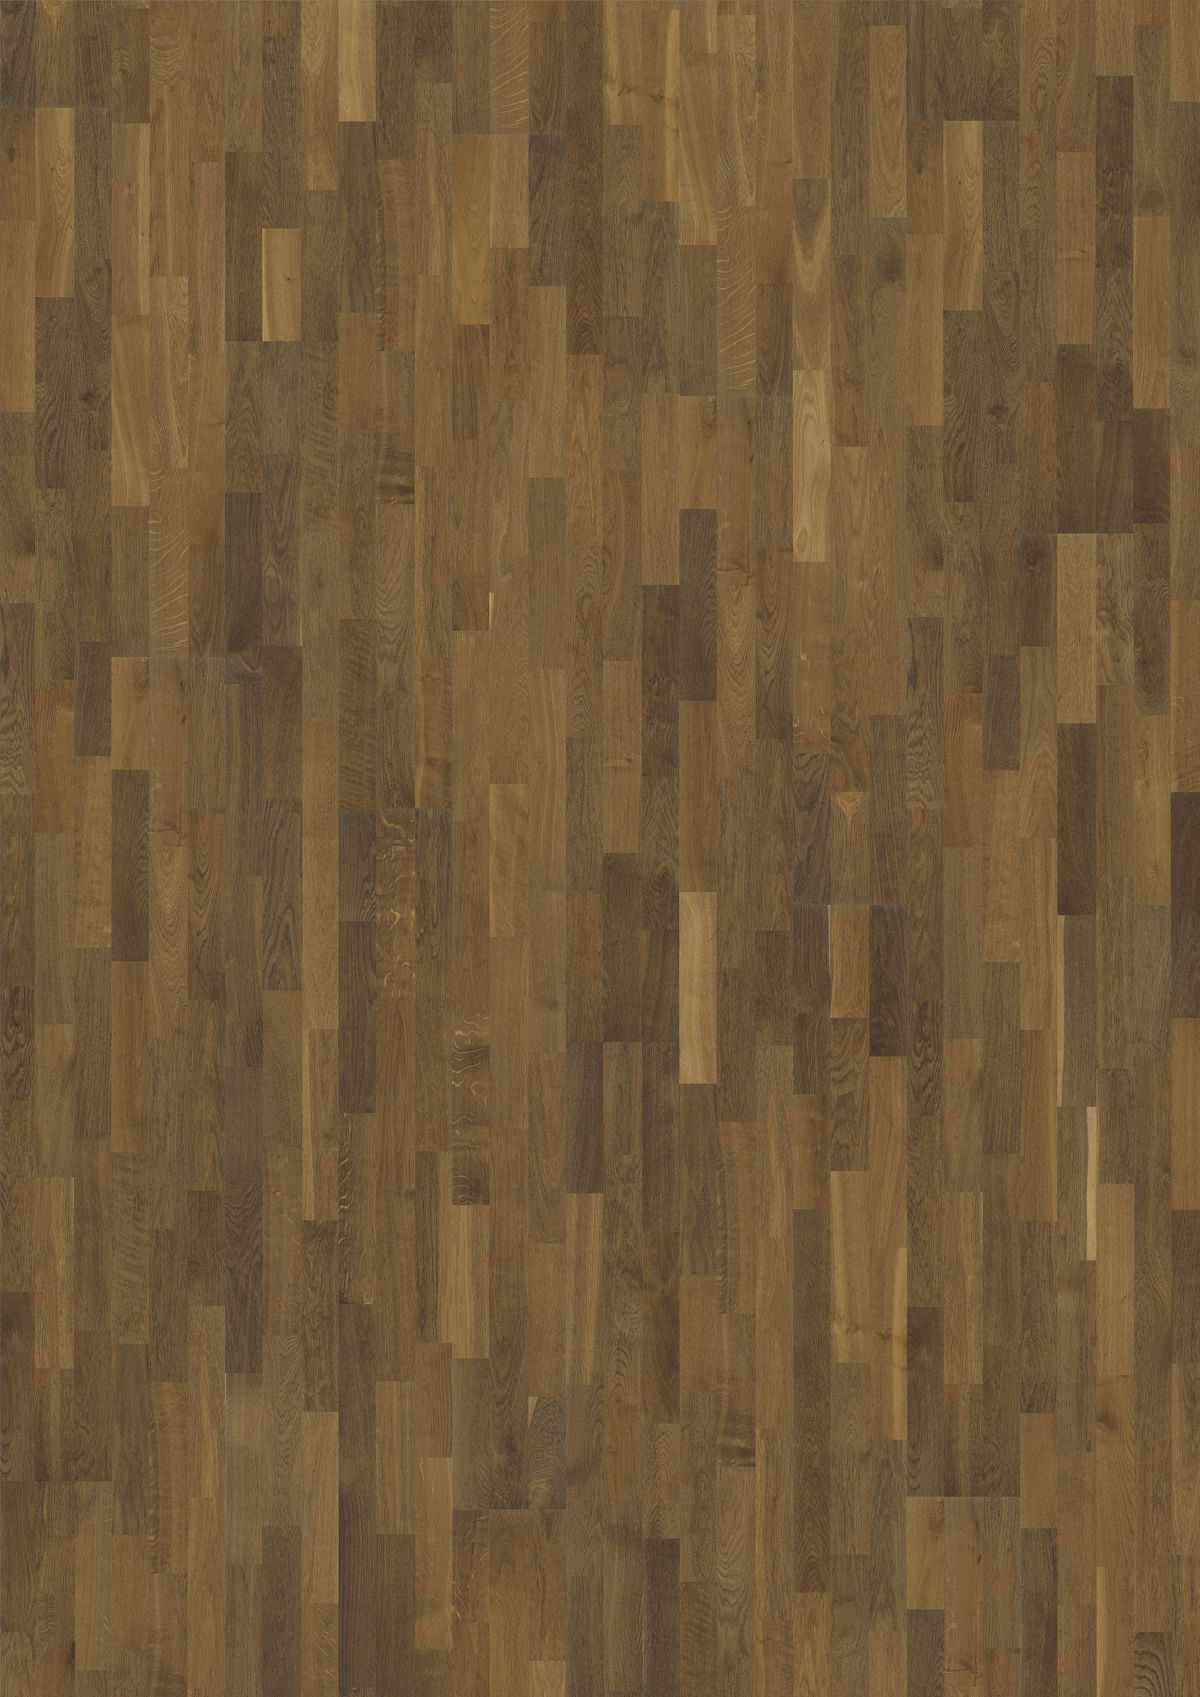 Kahrs artisan oak smoke engineered wood flooring for Kahrs flooring